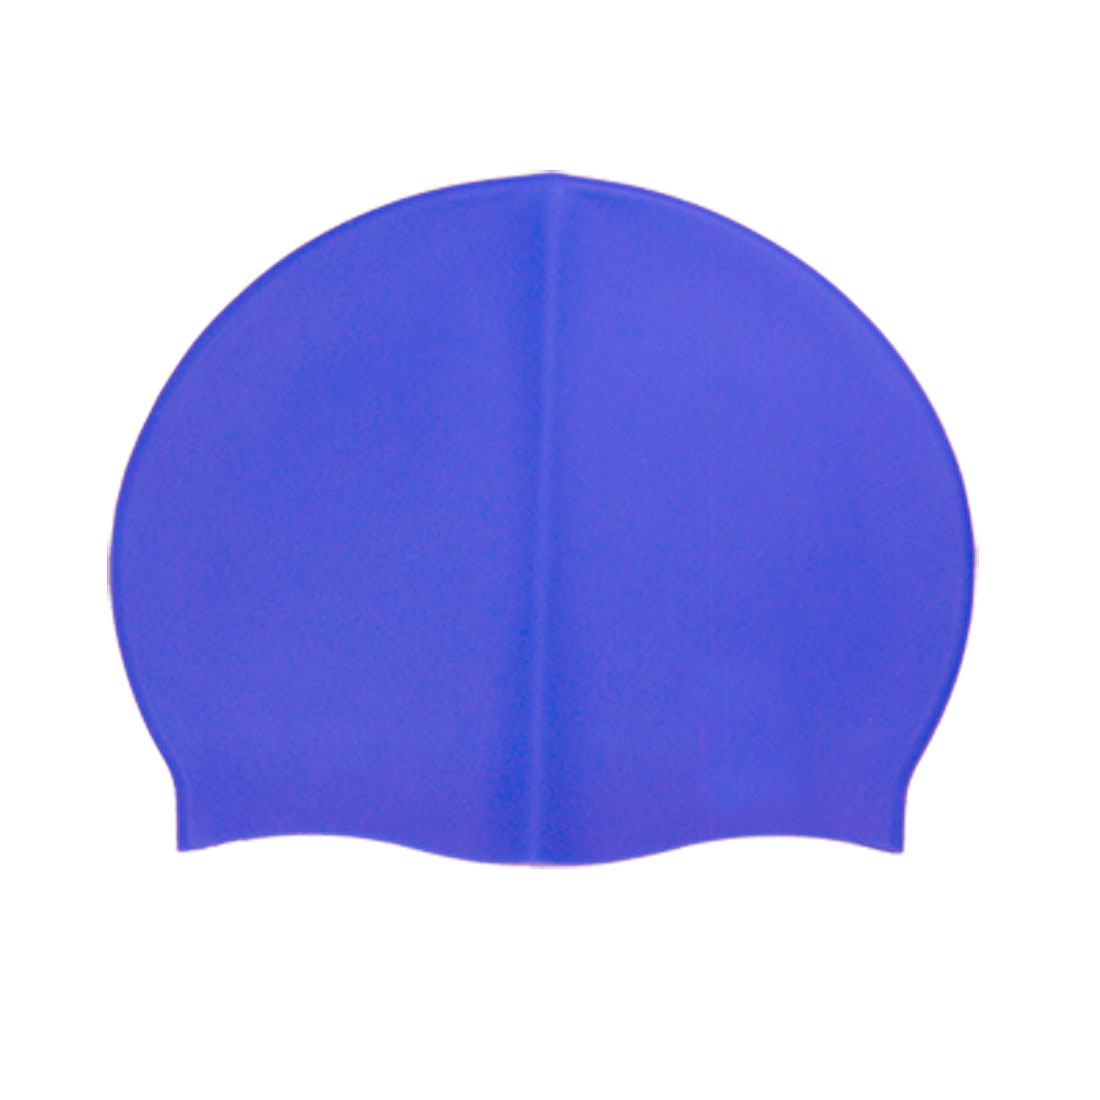 Blue Flexible Silicone Swimming Cap Swim Hat for Swimmer